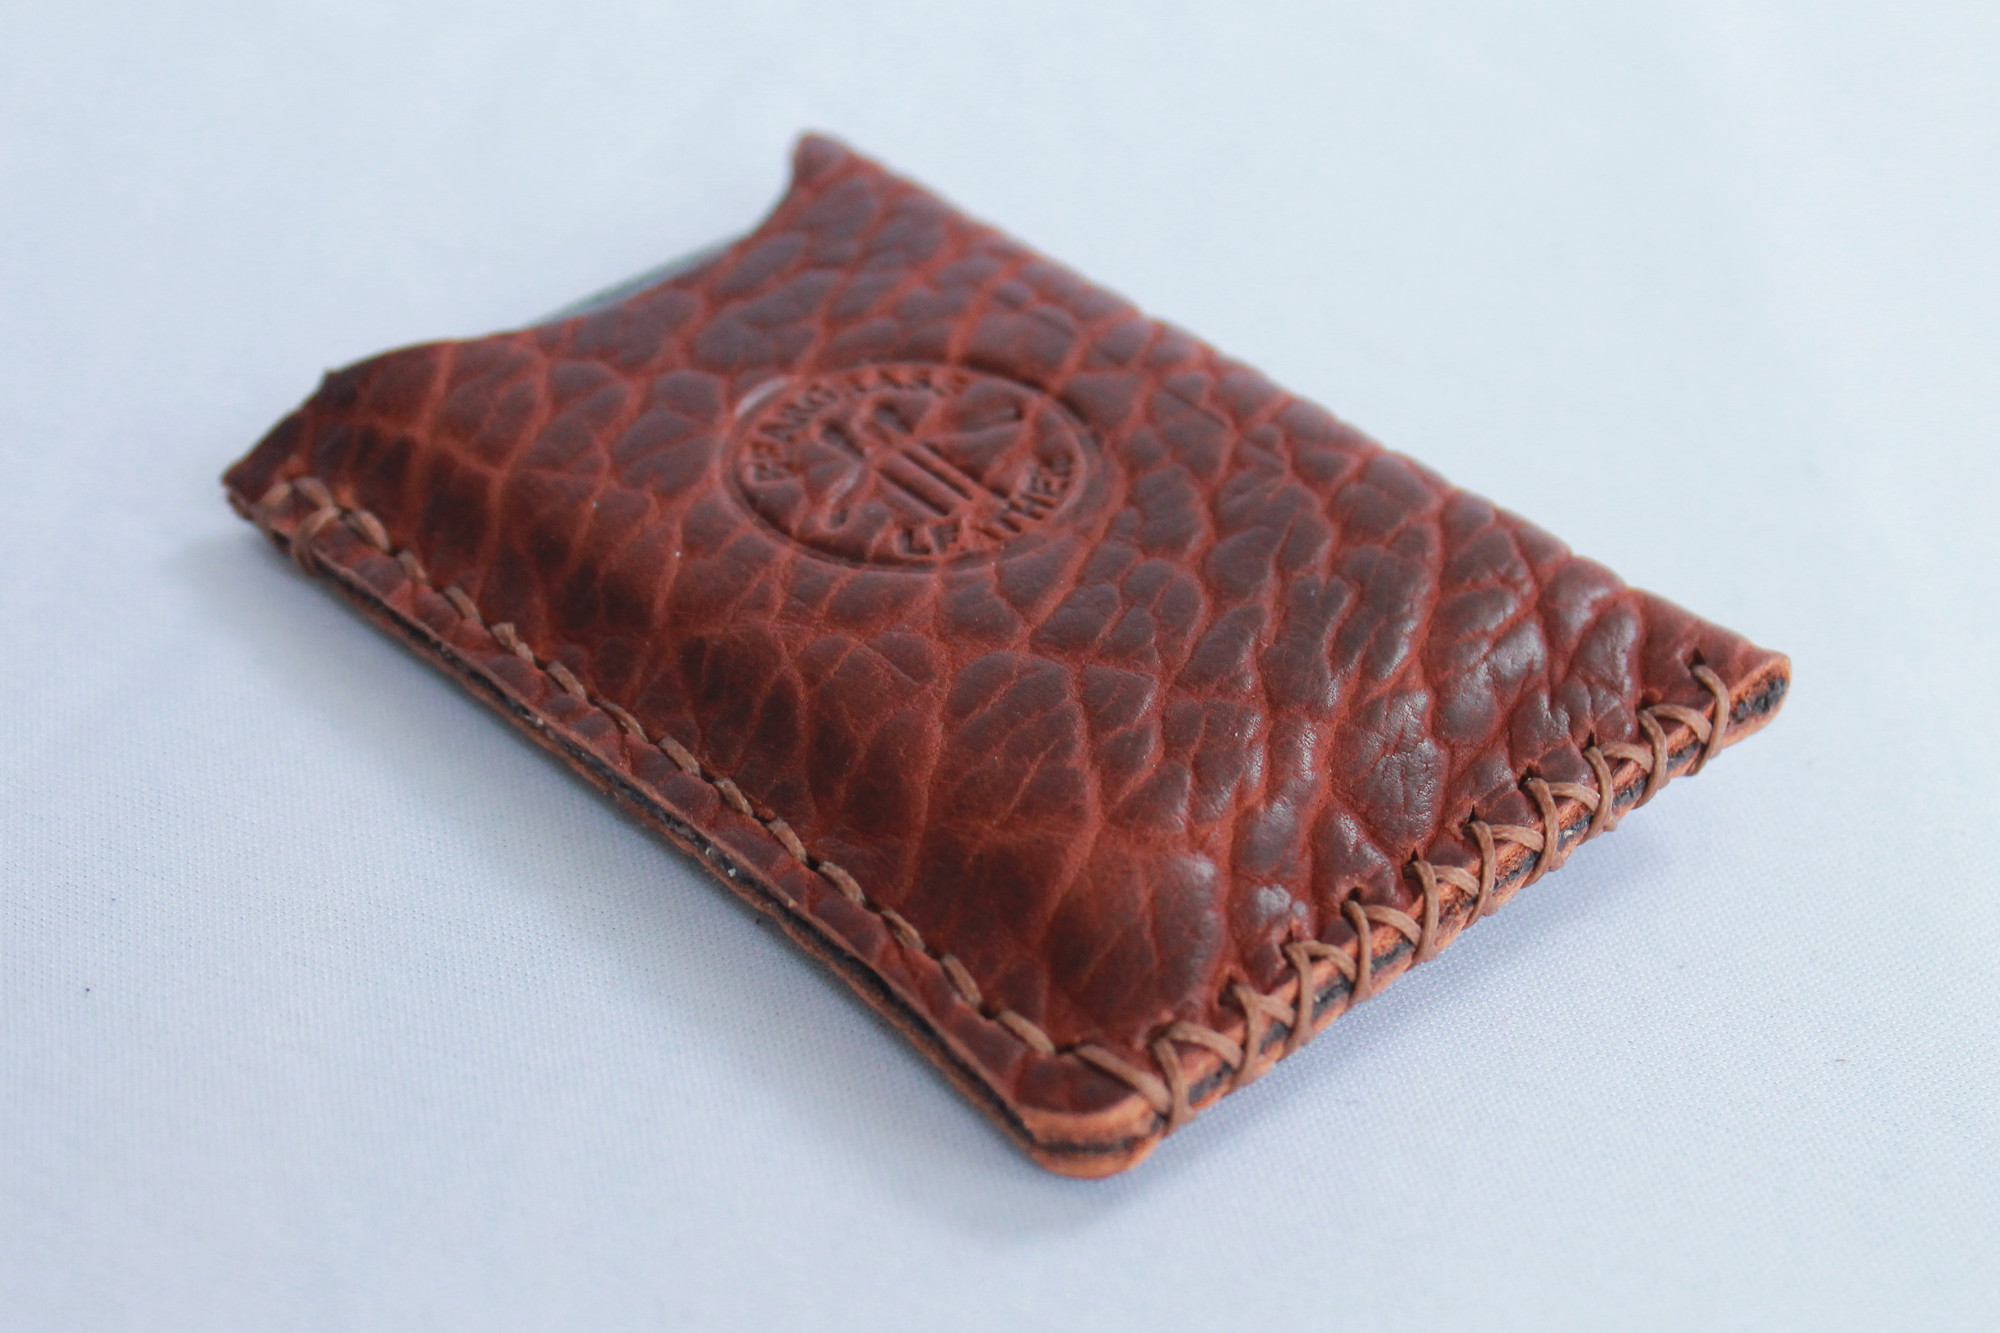 Bison leather likes to shrink and make this aggressive pebbling.